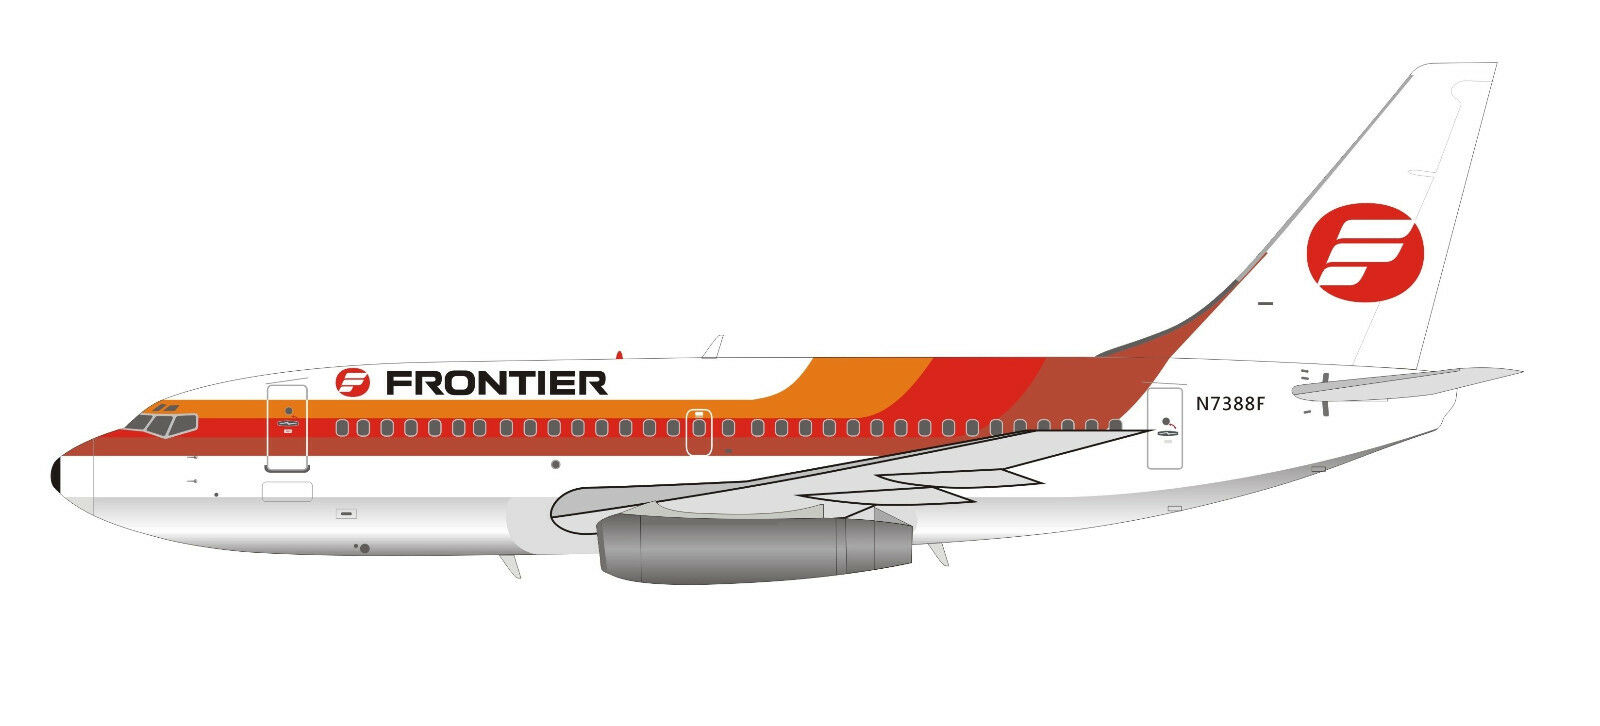 Inflight 200 IF732F90818 1/200 Frontiera Airlines Boeing 737-200 N7388f W/ W/ W/ Stand f89d0c